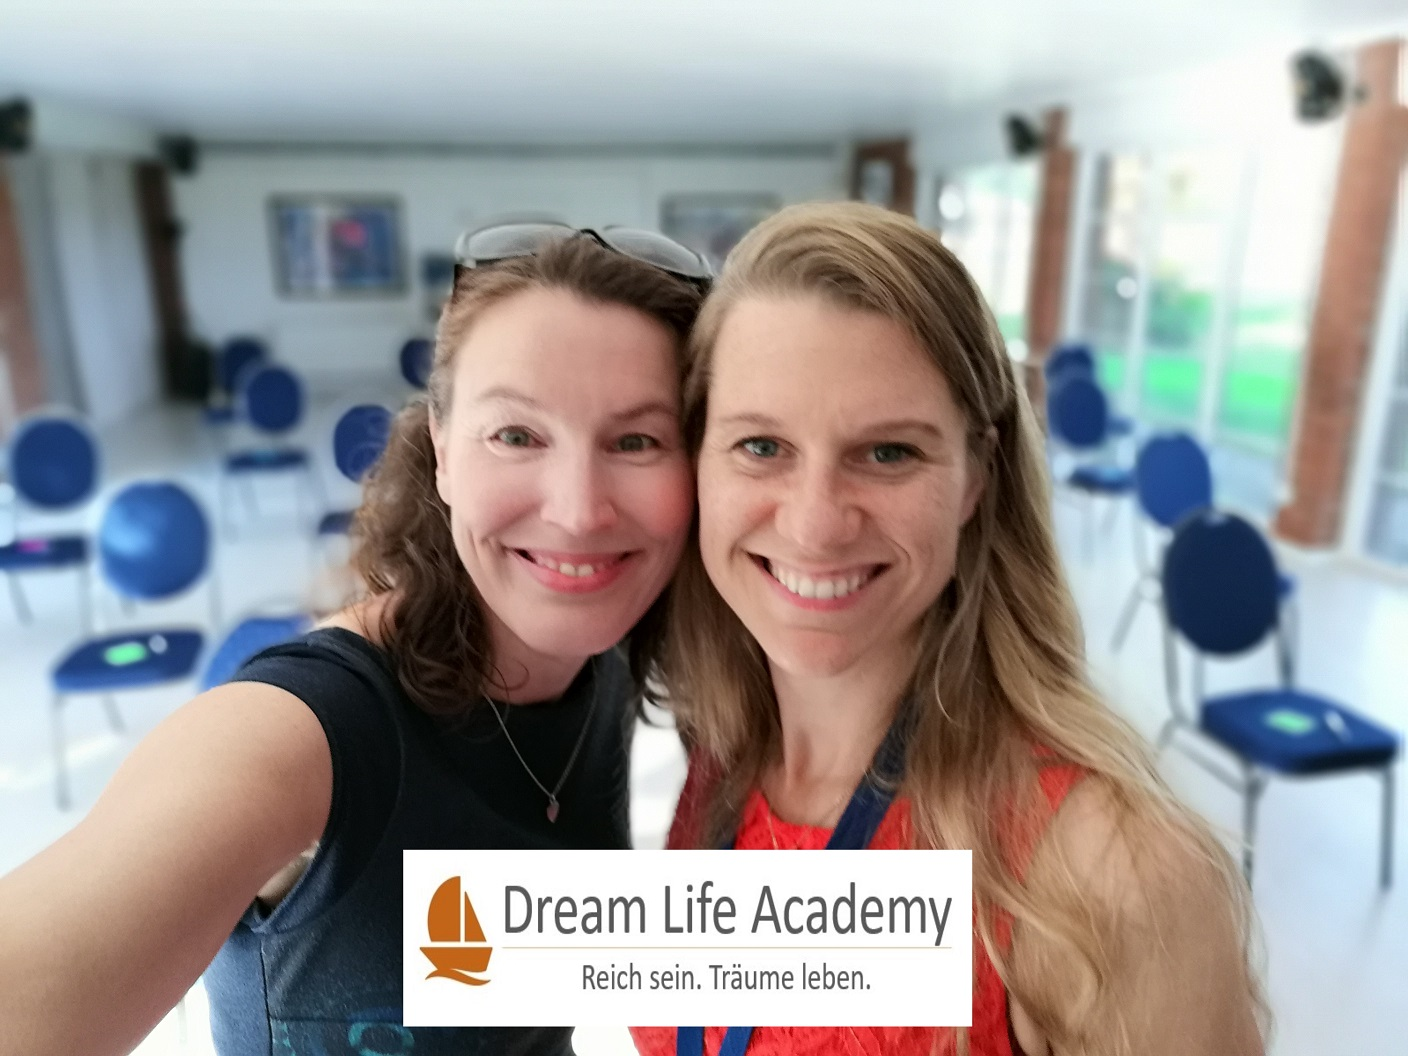 Dream Life Academy